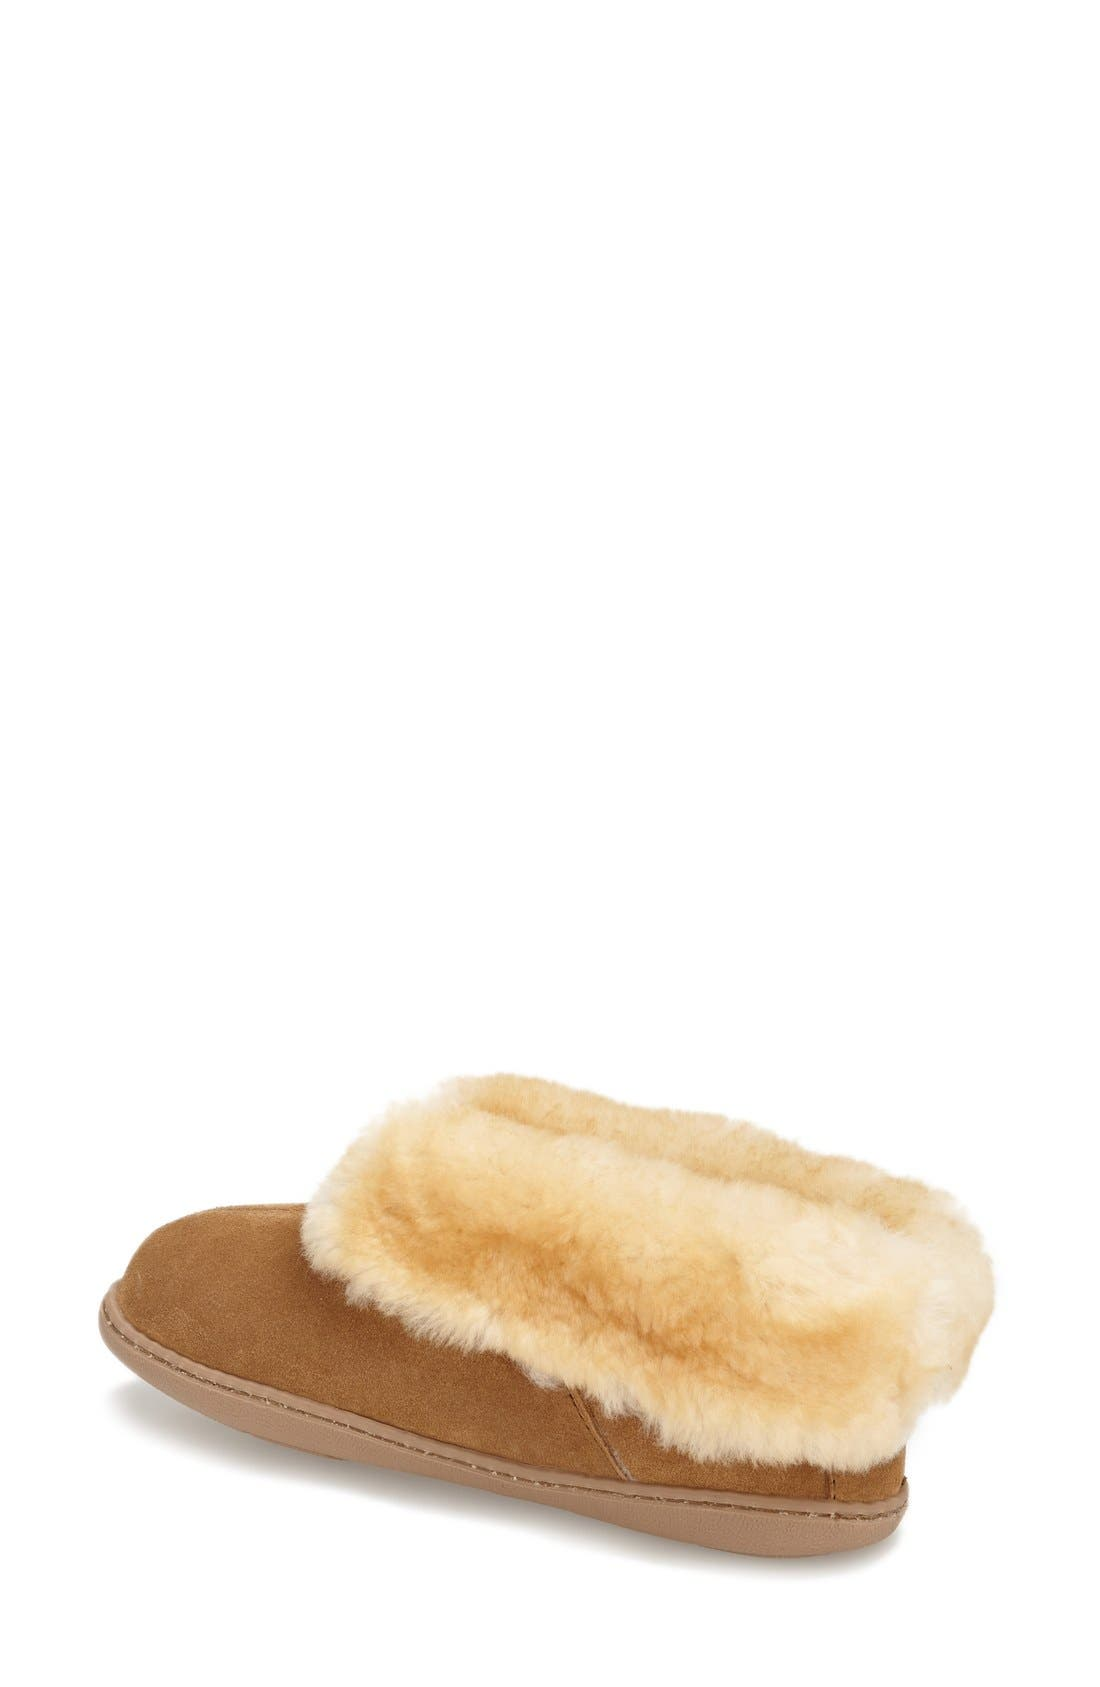 Sheepskin Slipper Bootie,                             Alternate thumbnail 2, color,                             Tan Suede